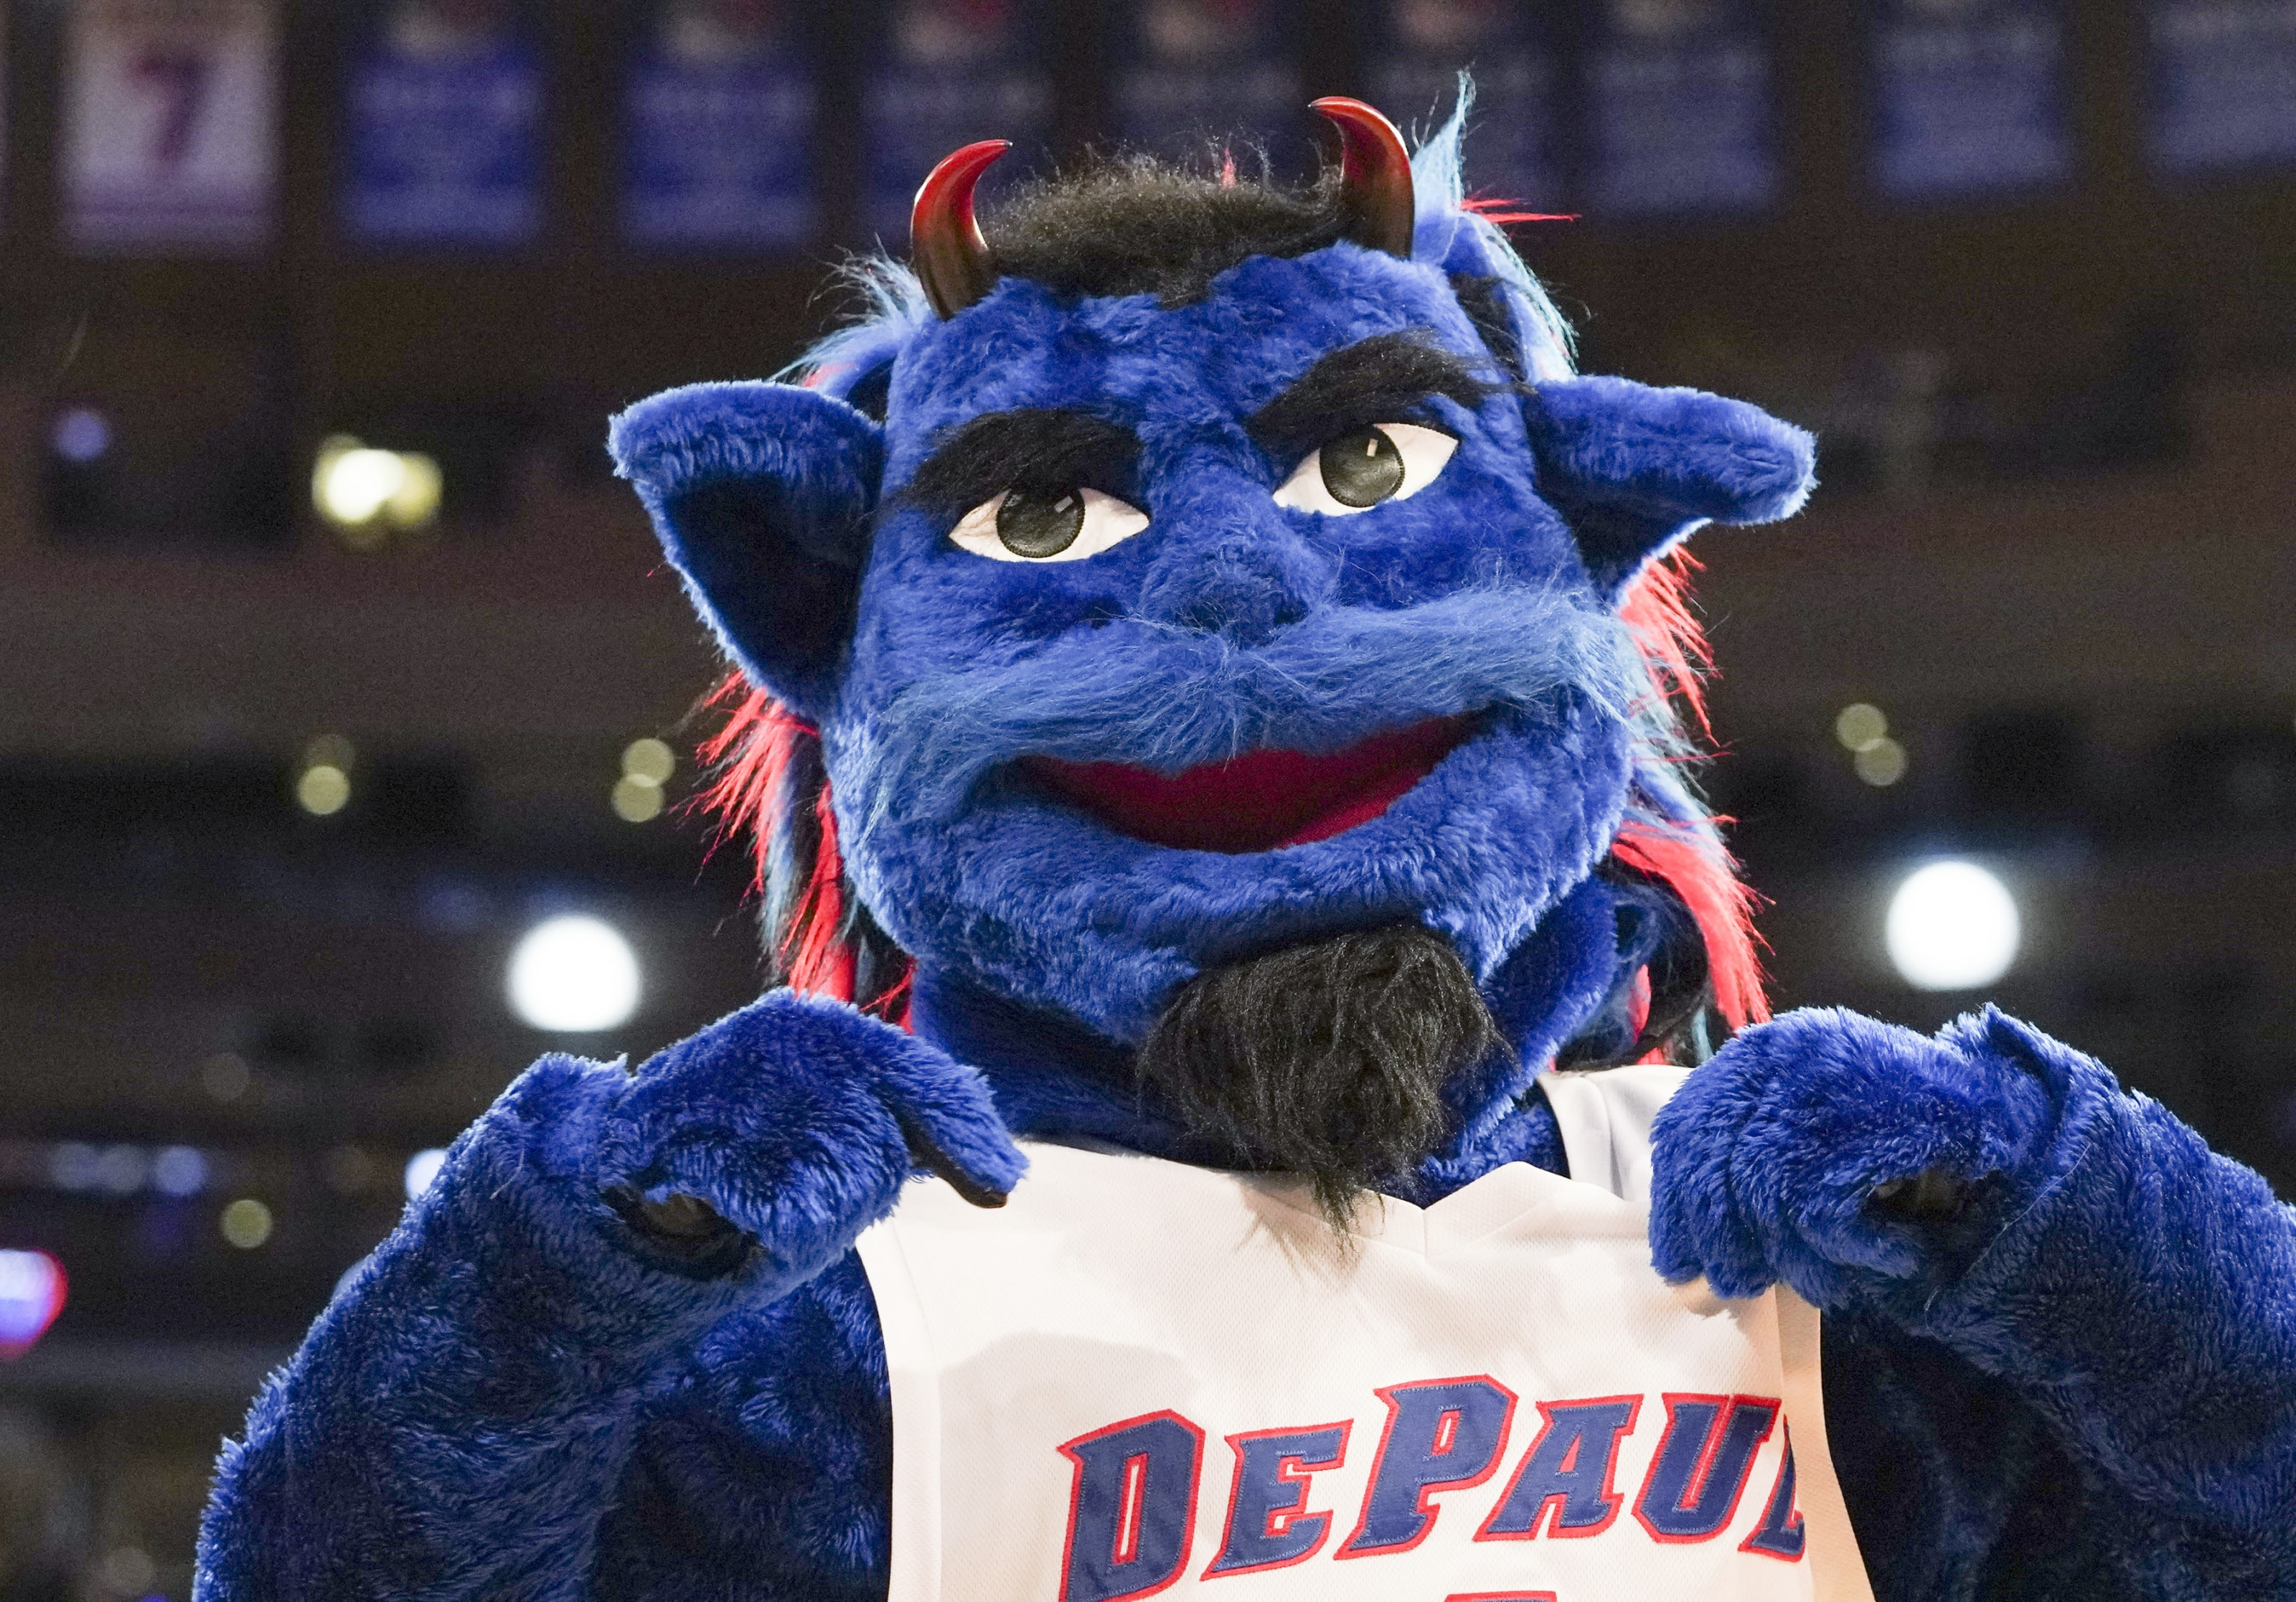 Depaul Christmas Concert 2020 DePaul Basketball: Key 2020 offseason storylines for Blue Demons